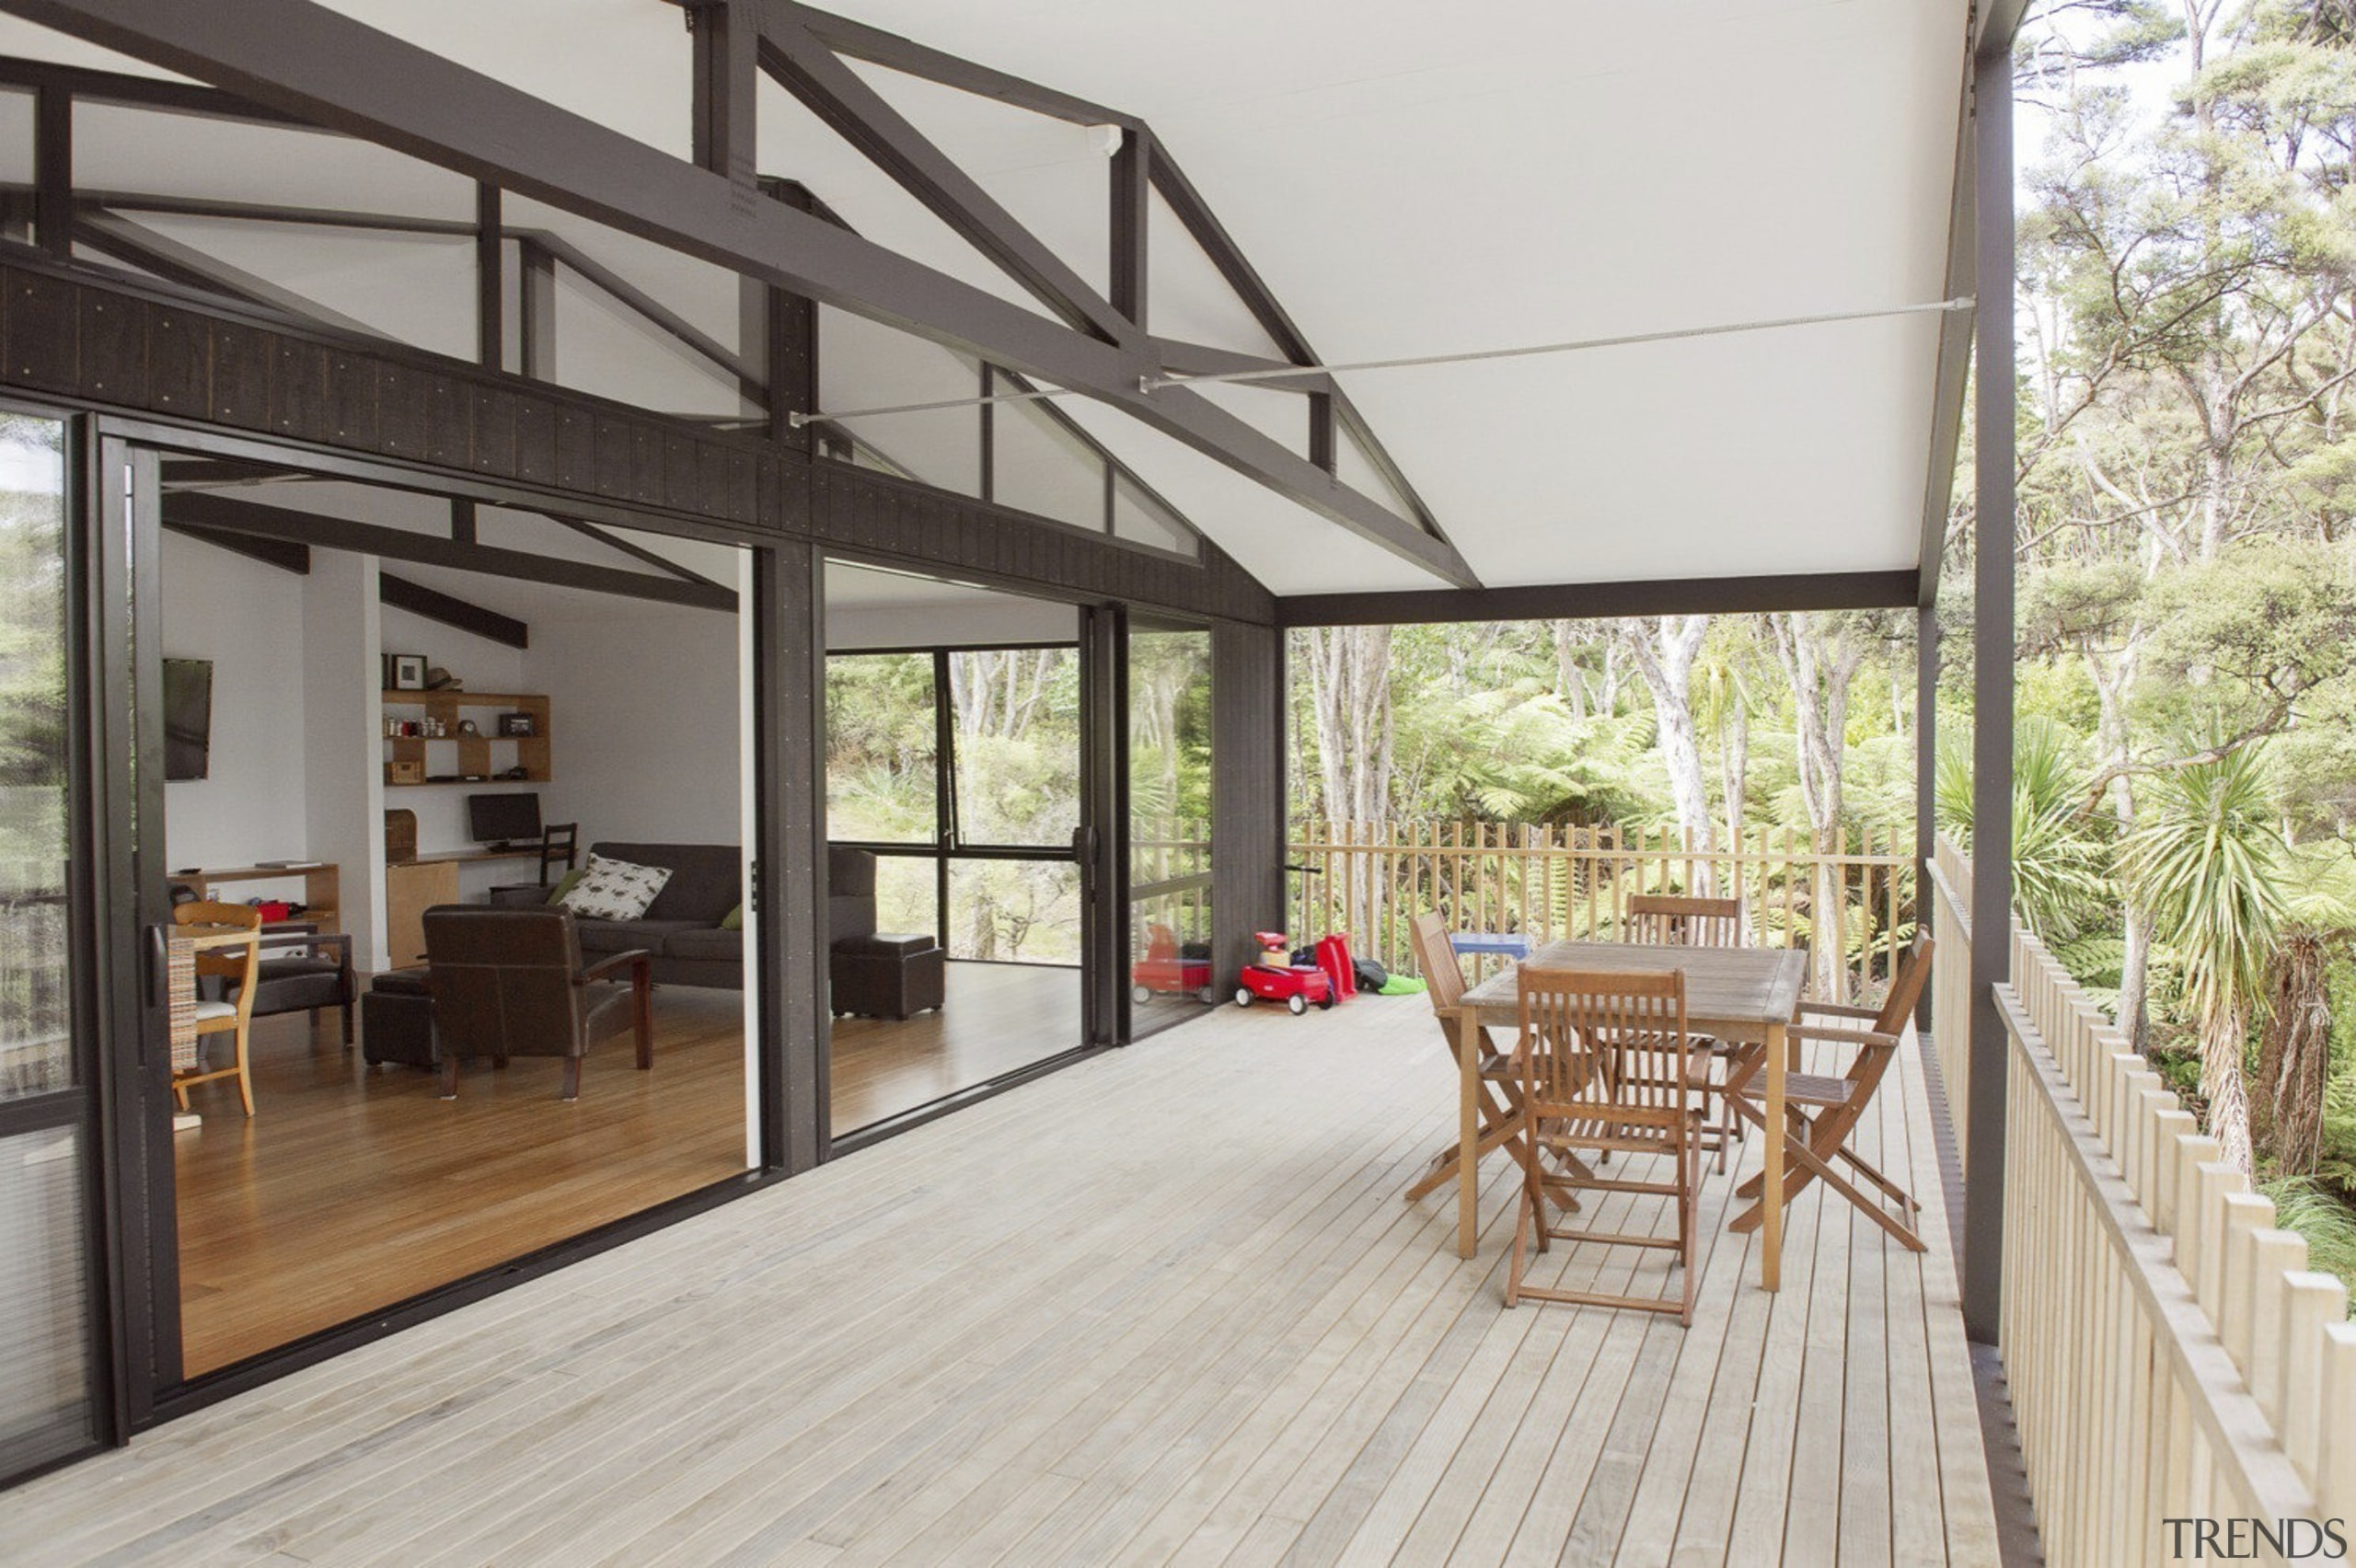 City meets country at Karaka Lakes - City architecture, balcony, deck, floor, house, interior design, property, real estate, roof, window, wood flooring, gray